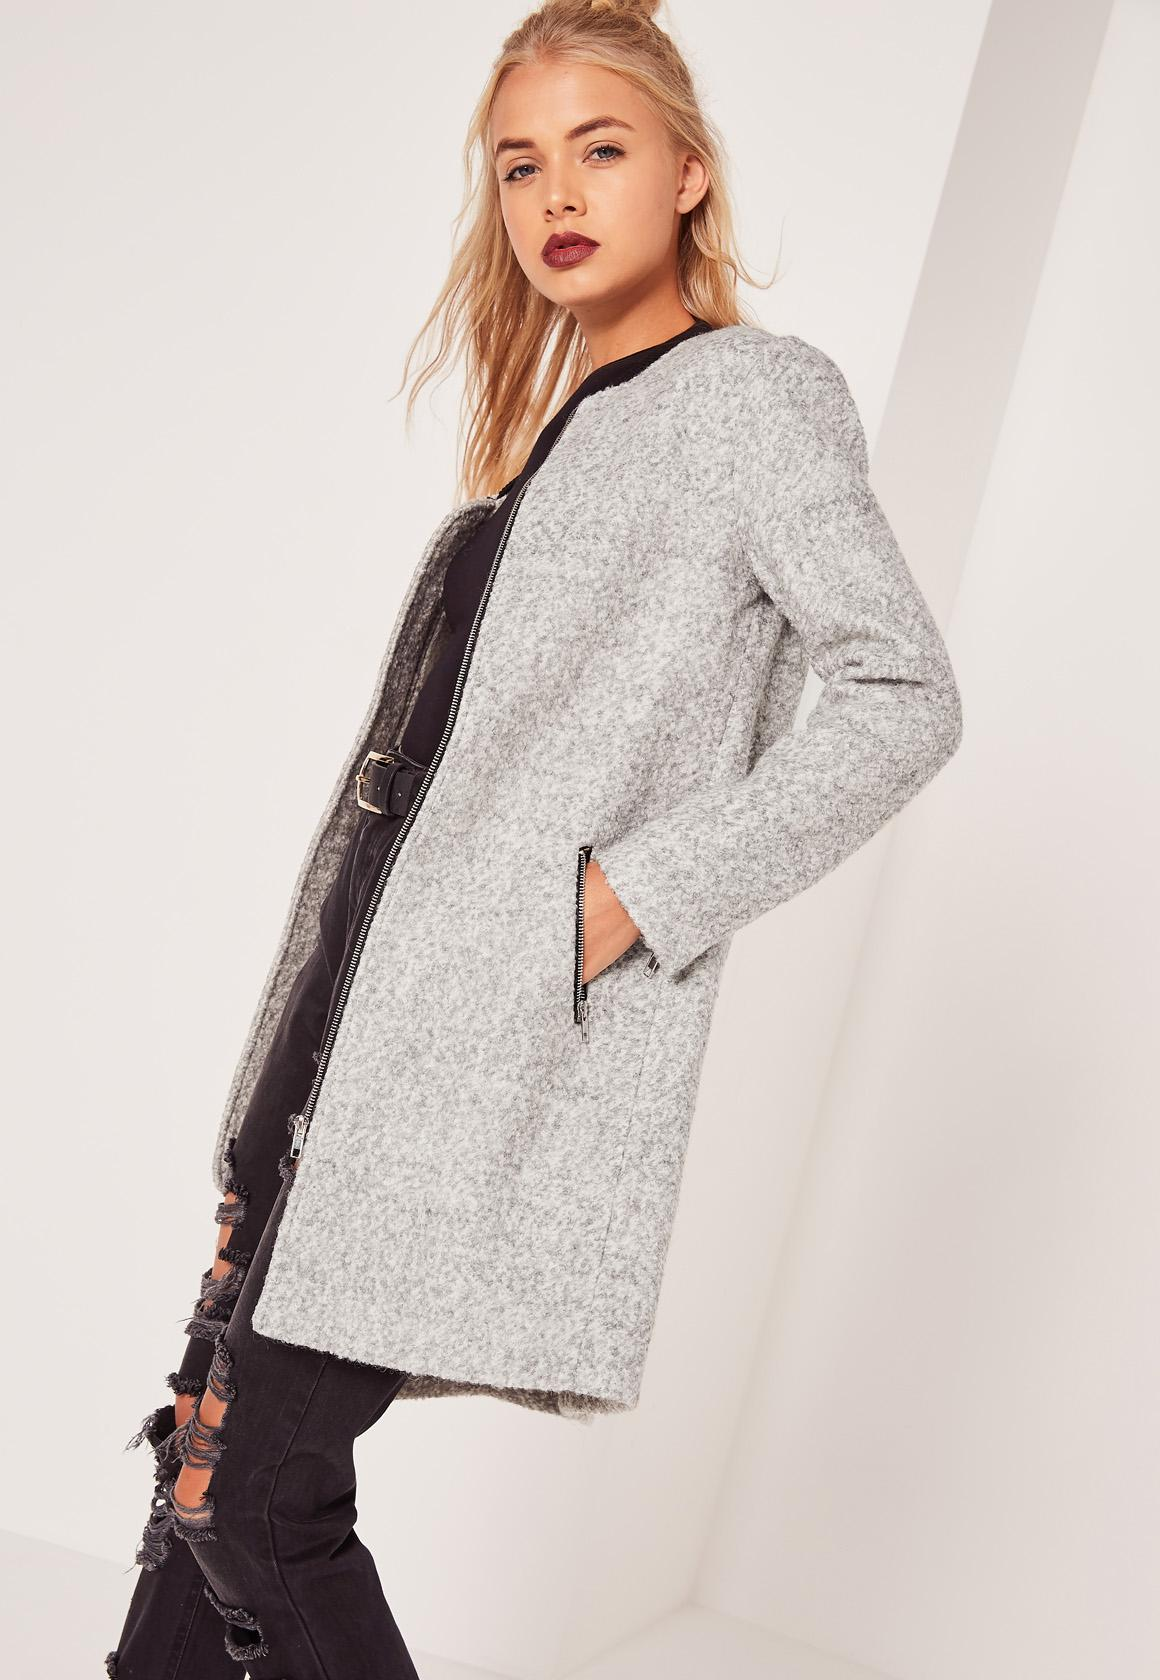 Wool Coats | Women's Camel & Khaki Jackets - Missguided